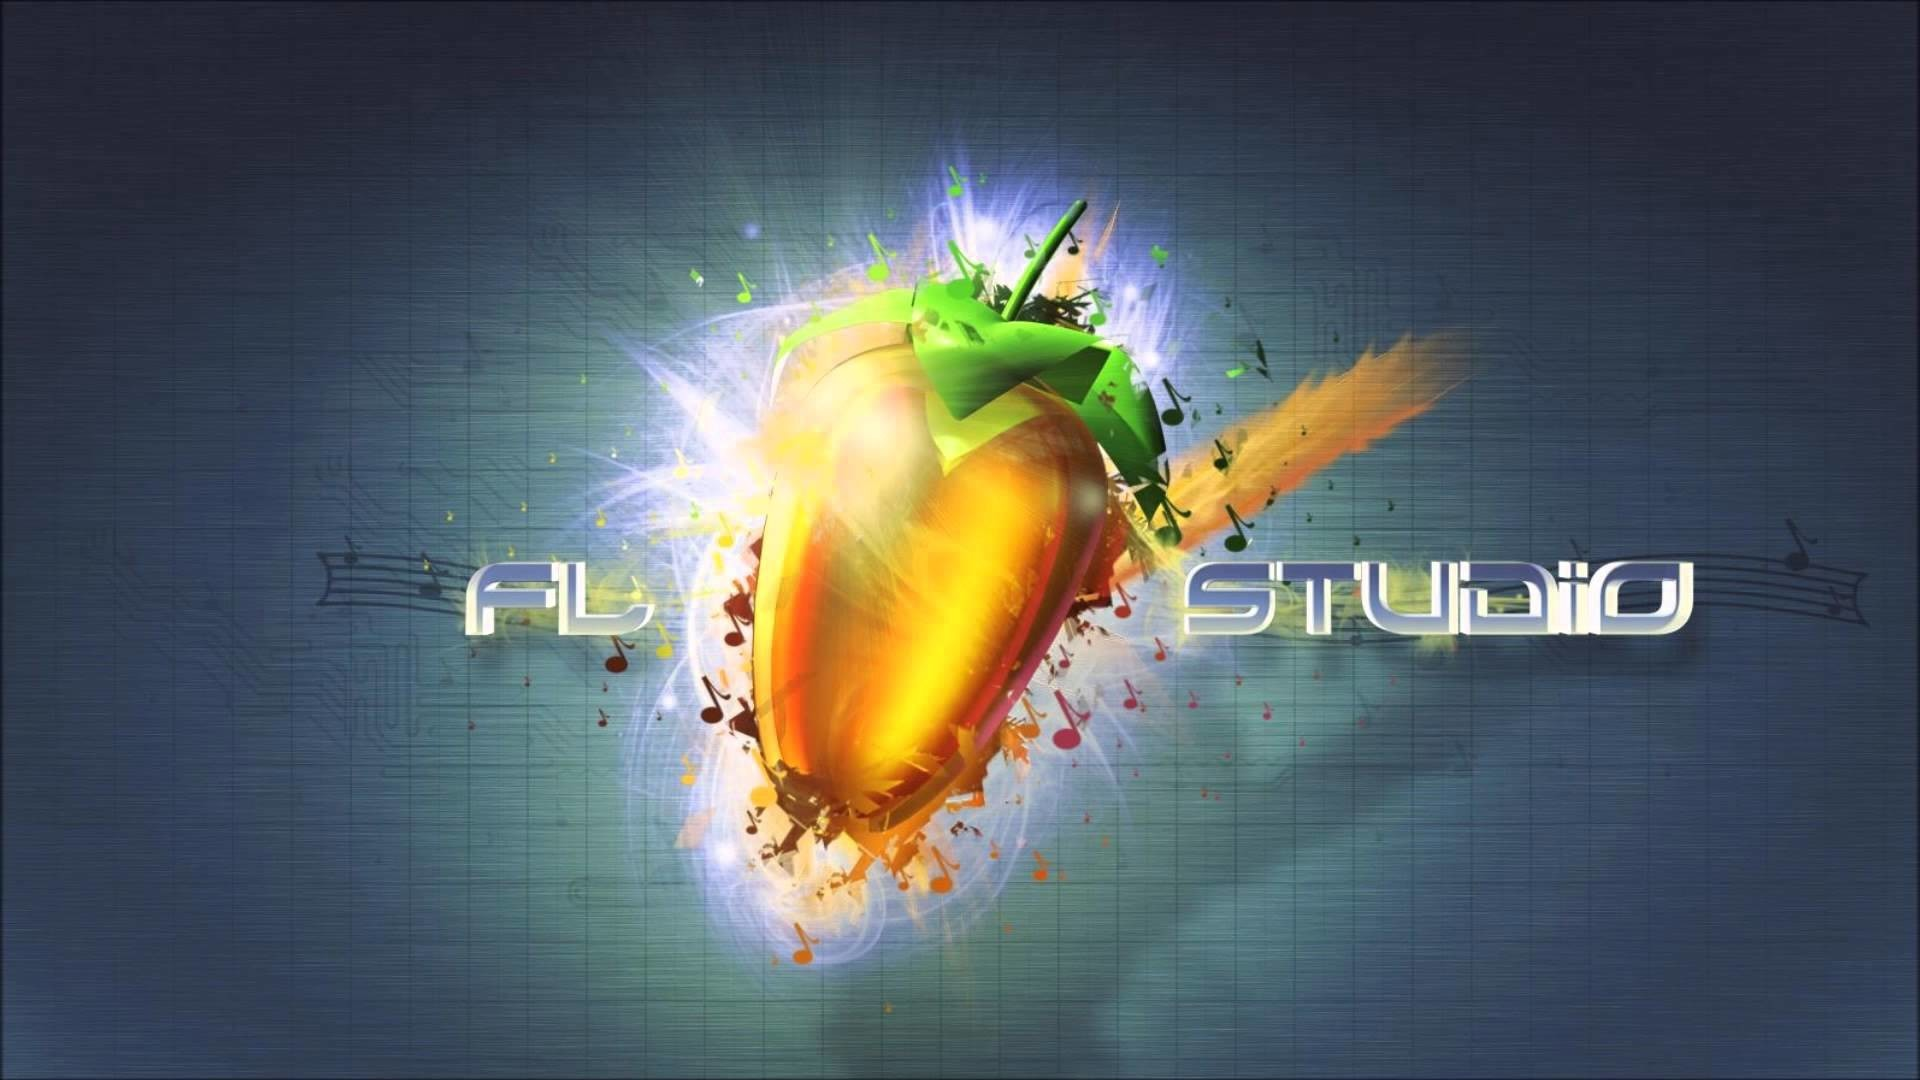 Fl Studio Wallpapers ·① WallpaperTag